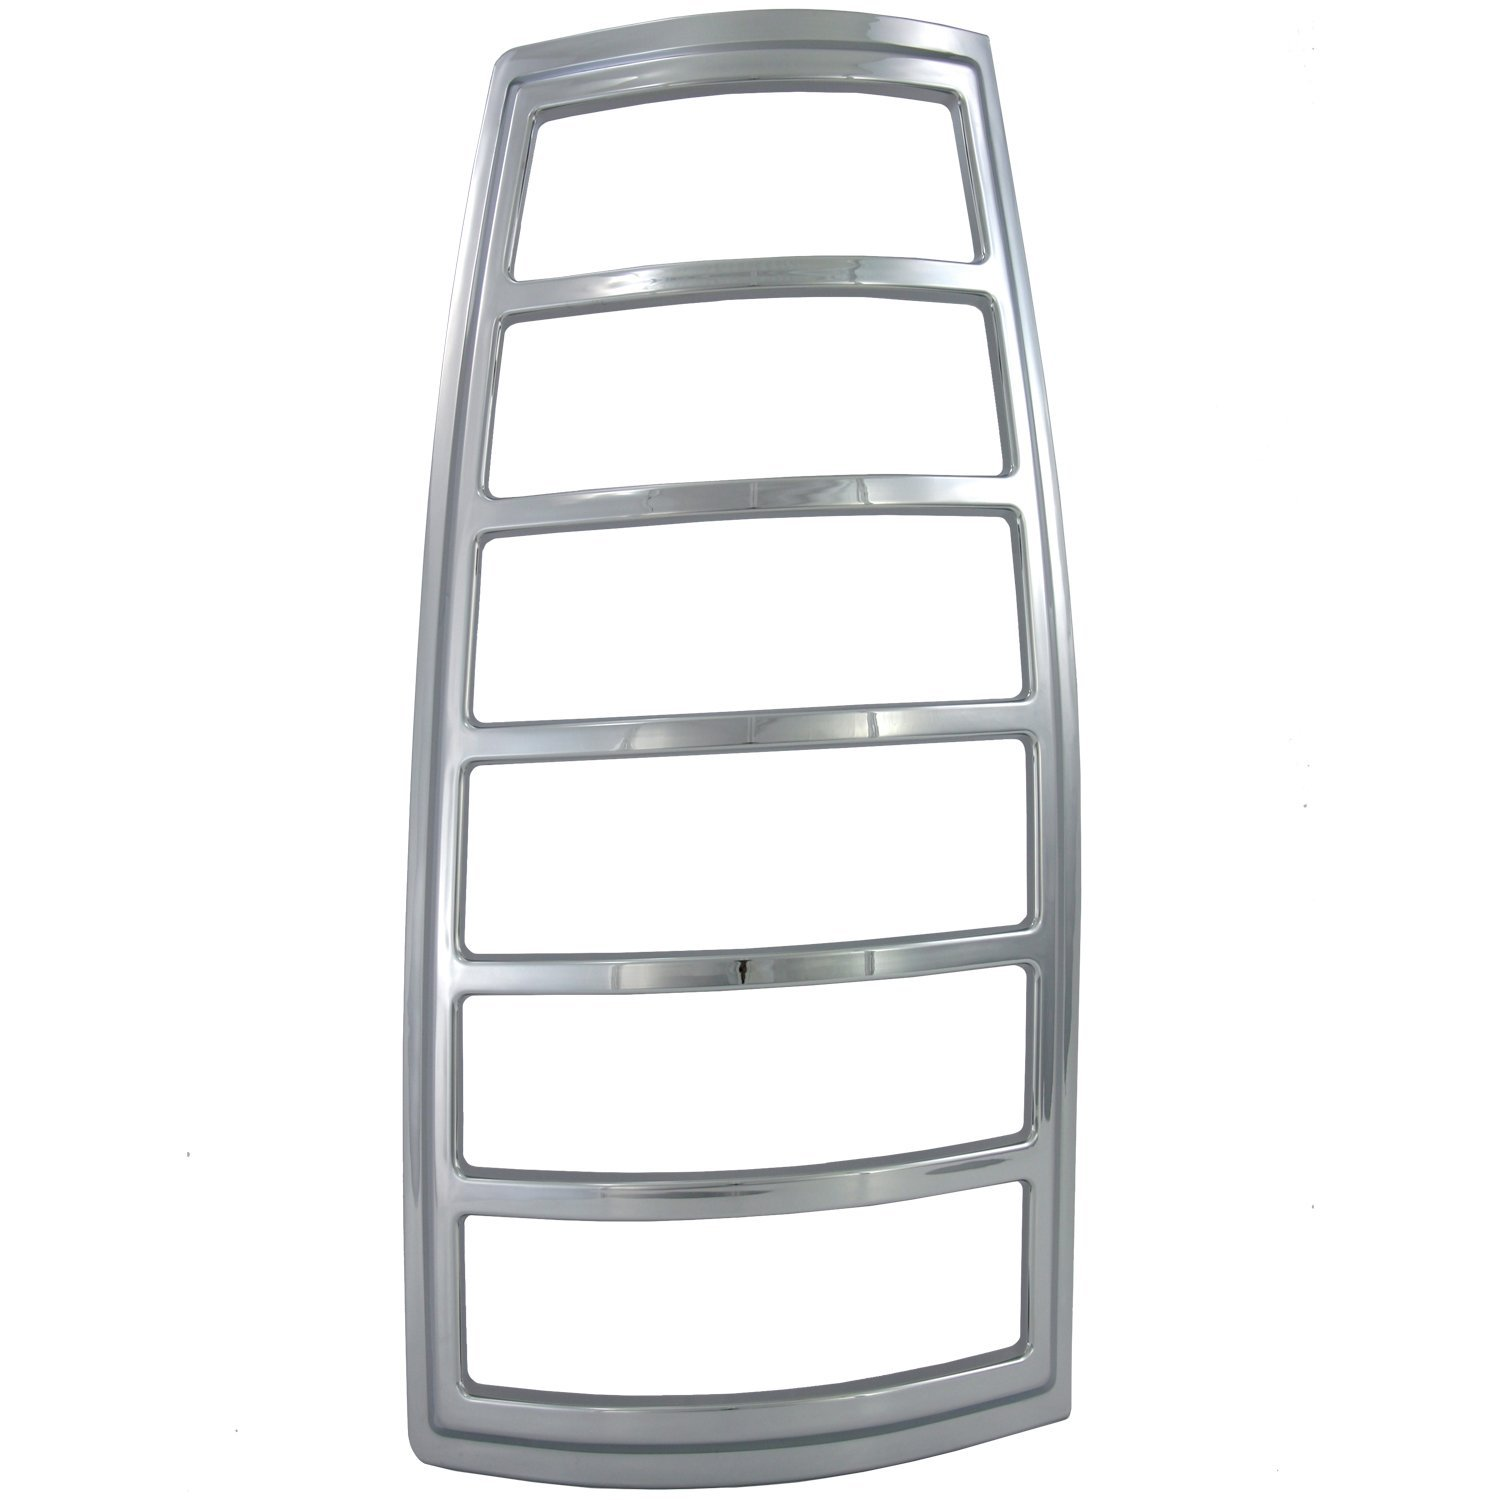 Buy Bully Chrome Door Handle Cover For A 88 98 Chevy C K